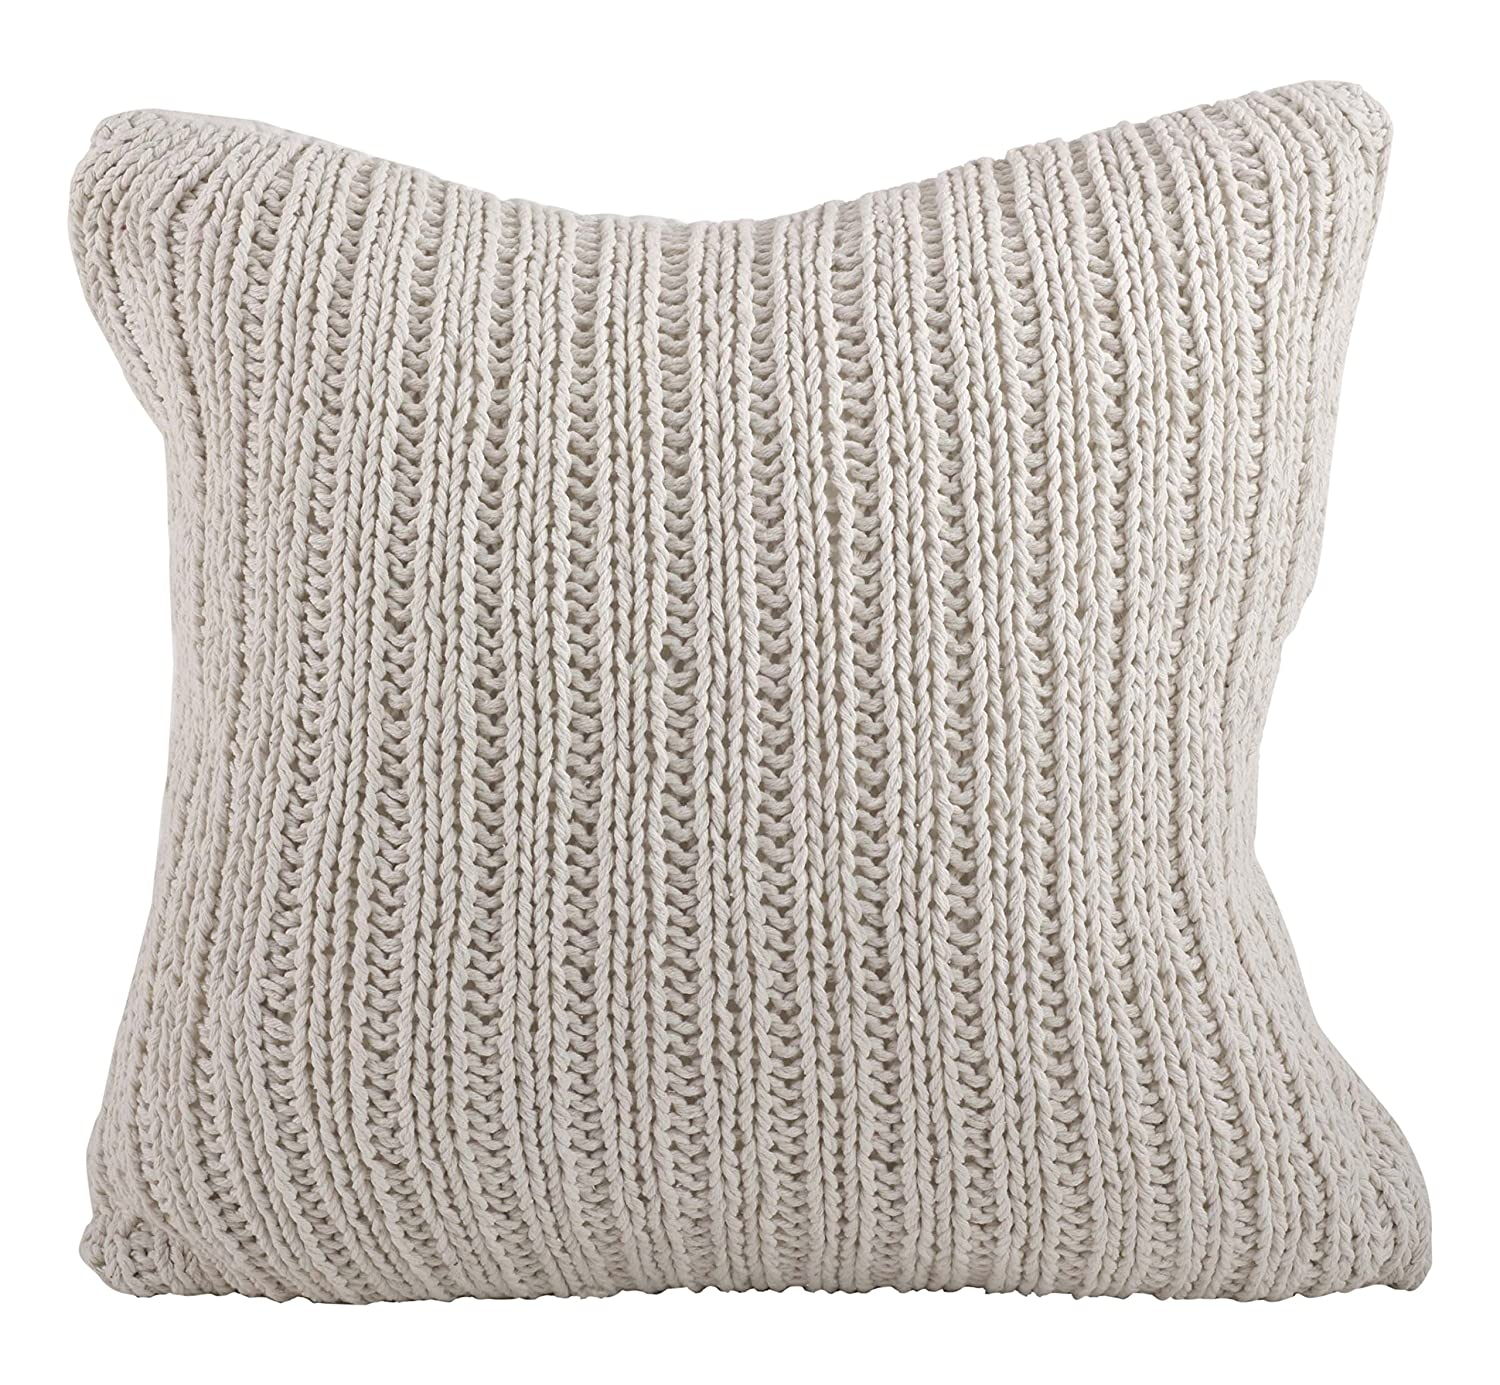 SARO LIFESTYLE 1312 Darcy Knitted Collection Cotton Knitten Design Down Filled Throw Pillow, Ivory 1312.I20S